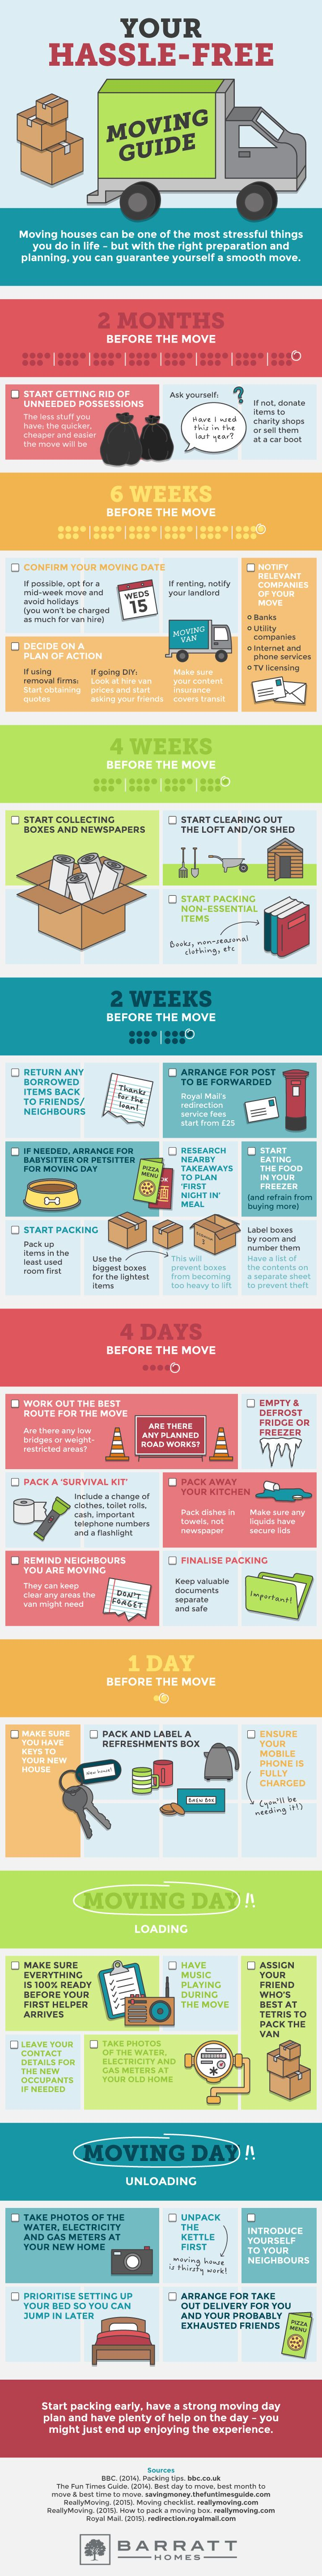 Moving houses can be one of the most stressful things you do in life, but with the right preparation and planning, you can guarantee yourself a smooth move.